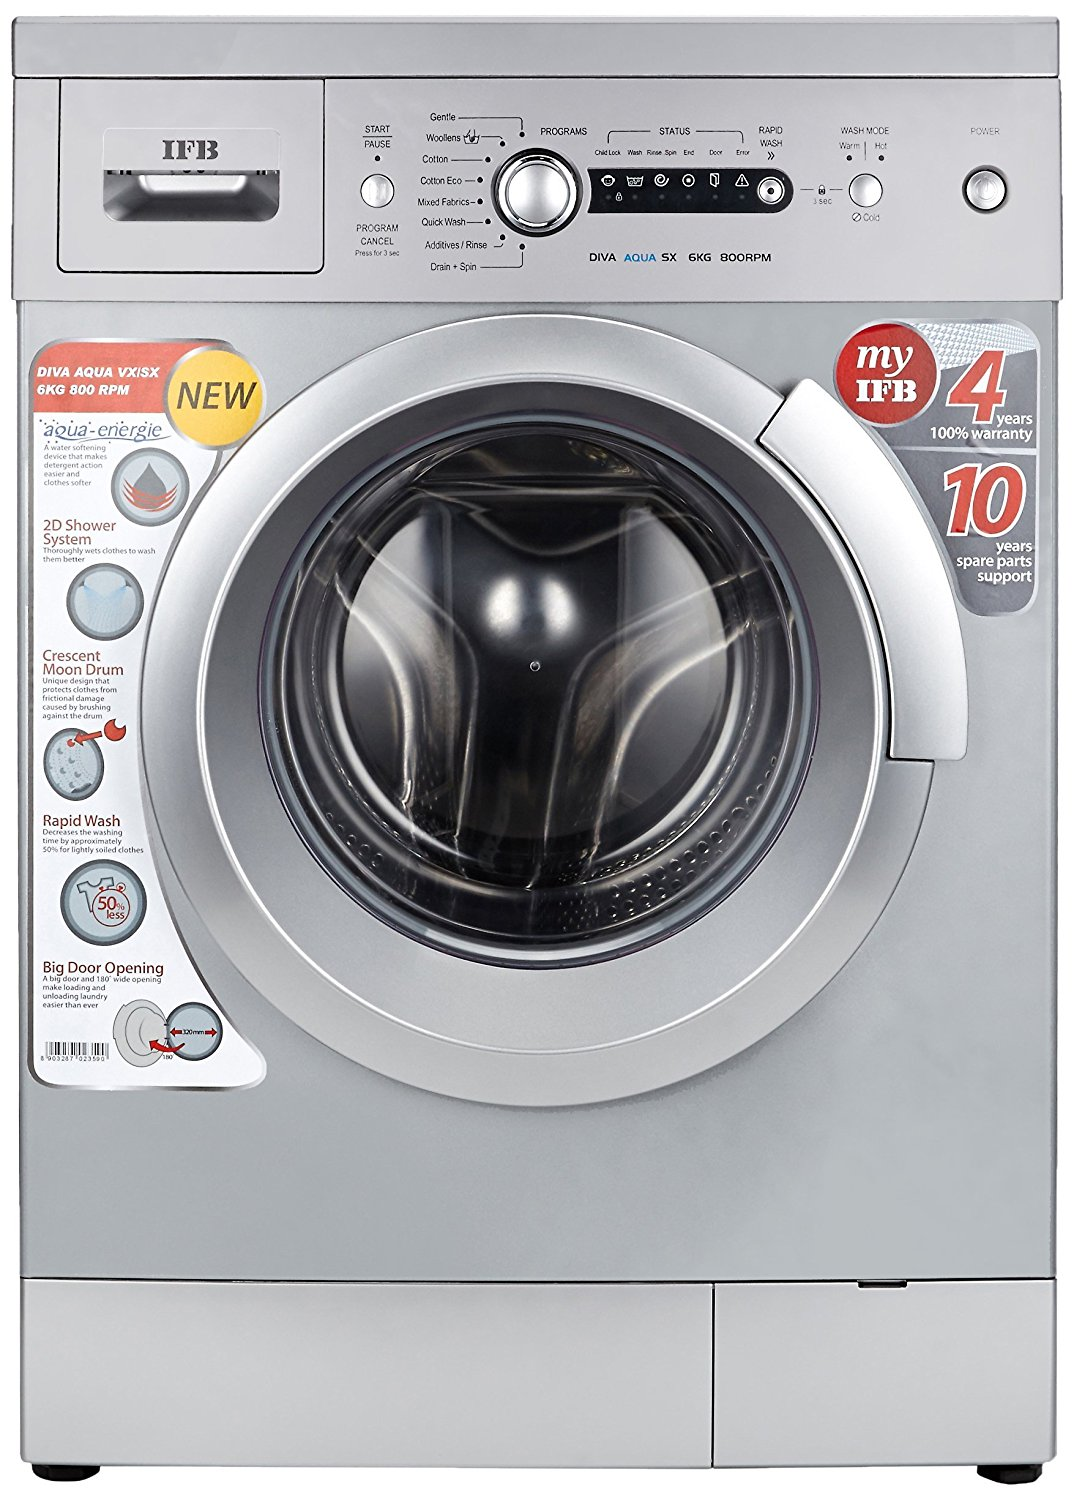 Ifb Washing Machine Drum Bearing Price : ifb 6 kg fully automatic front loading washing machine diva aqua sx silver twins electronics ~ Hamham.info Haus und Dekorationen